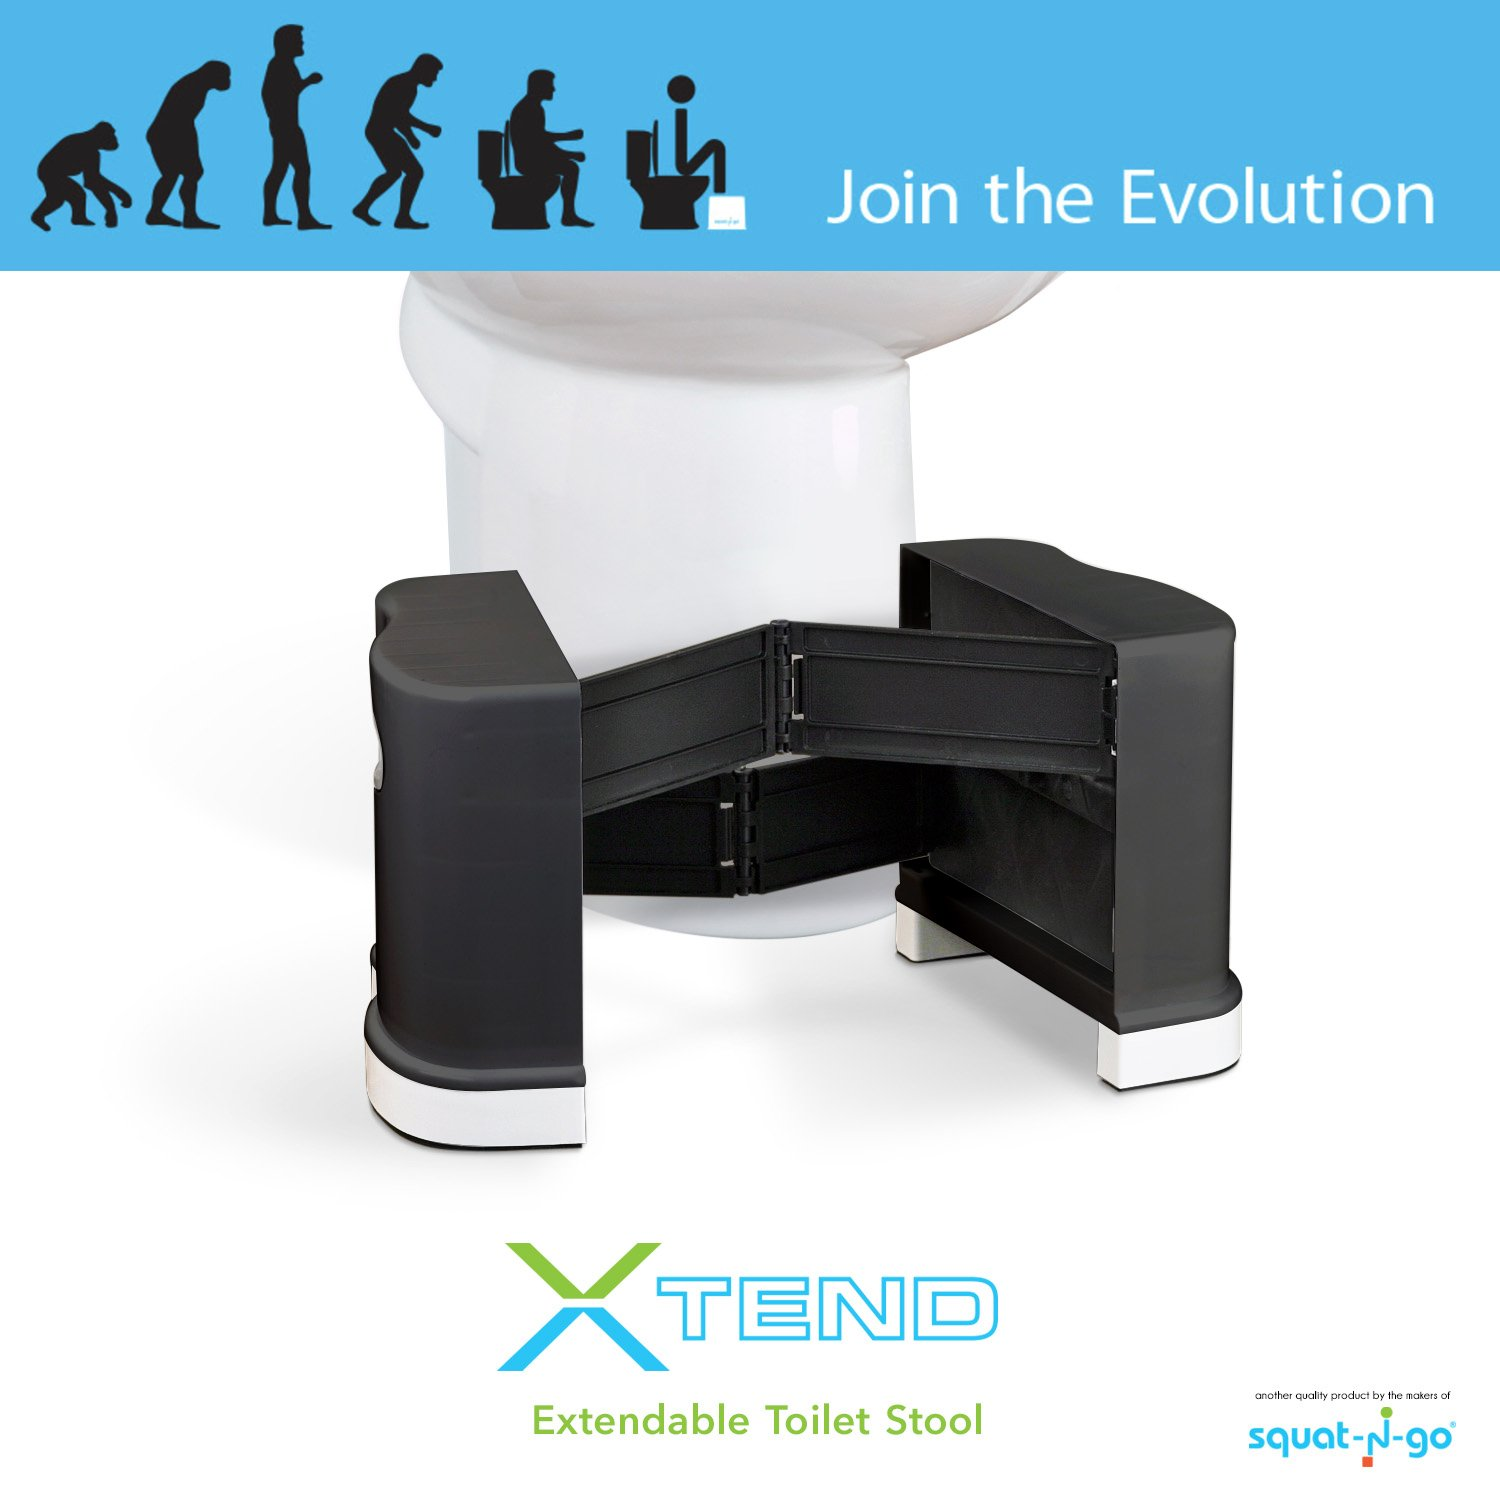 Squat N Go Extendable Toilet Stool | The Only Extendable Squatting Stool | Convenient and Compact | Fits All Toilets, 7'' and 8'' Heights, Use in Any Bathroom (Black)